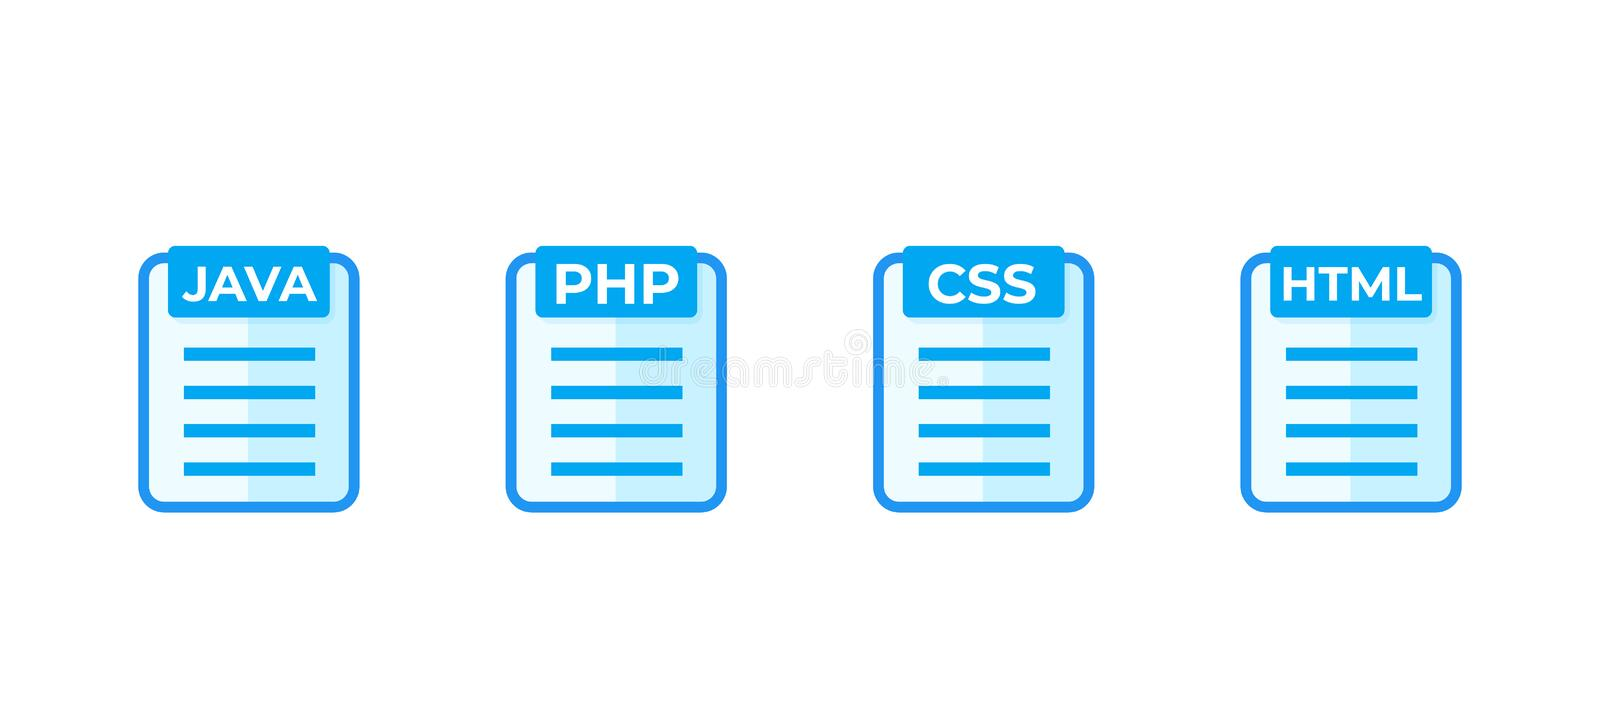 JAVA, PHP, CSS, HTML code vector icons on white. Eps 10 file, easy to edit royalty free illustration